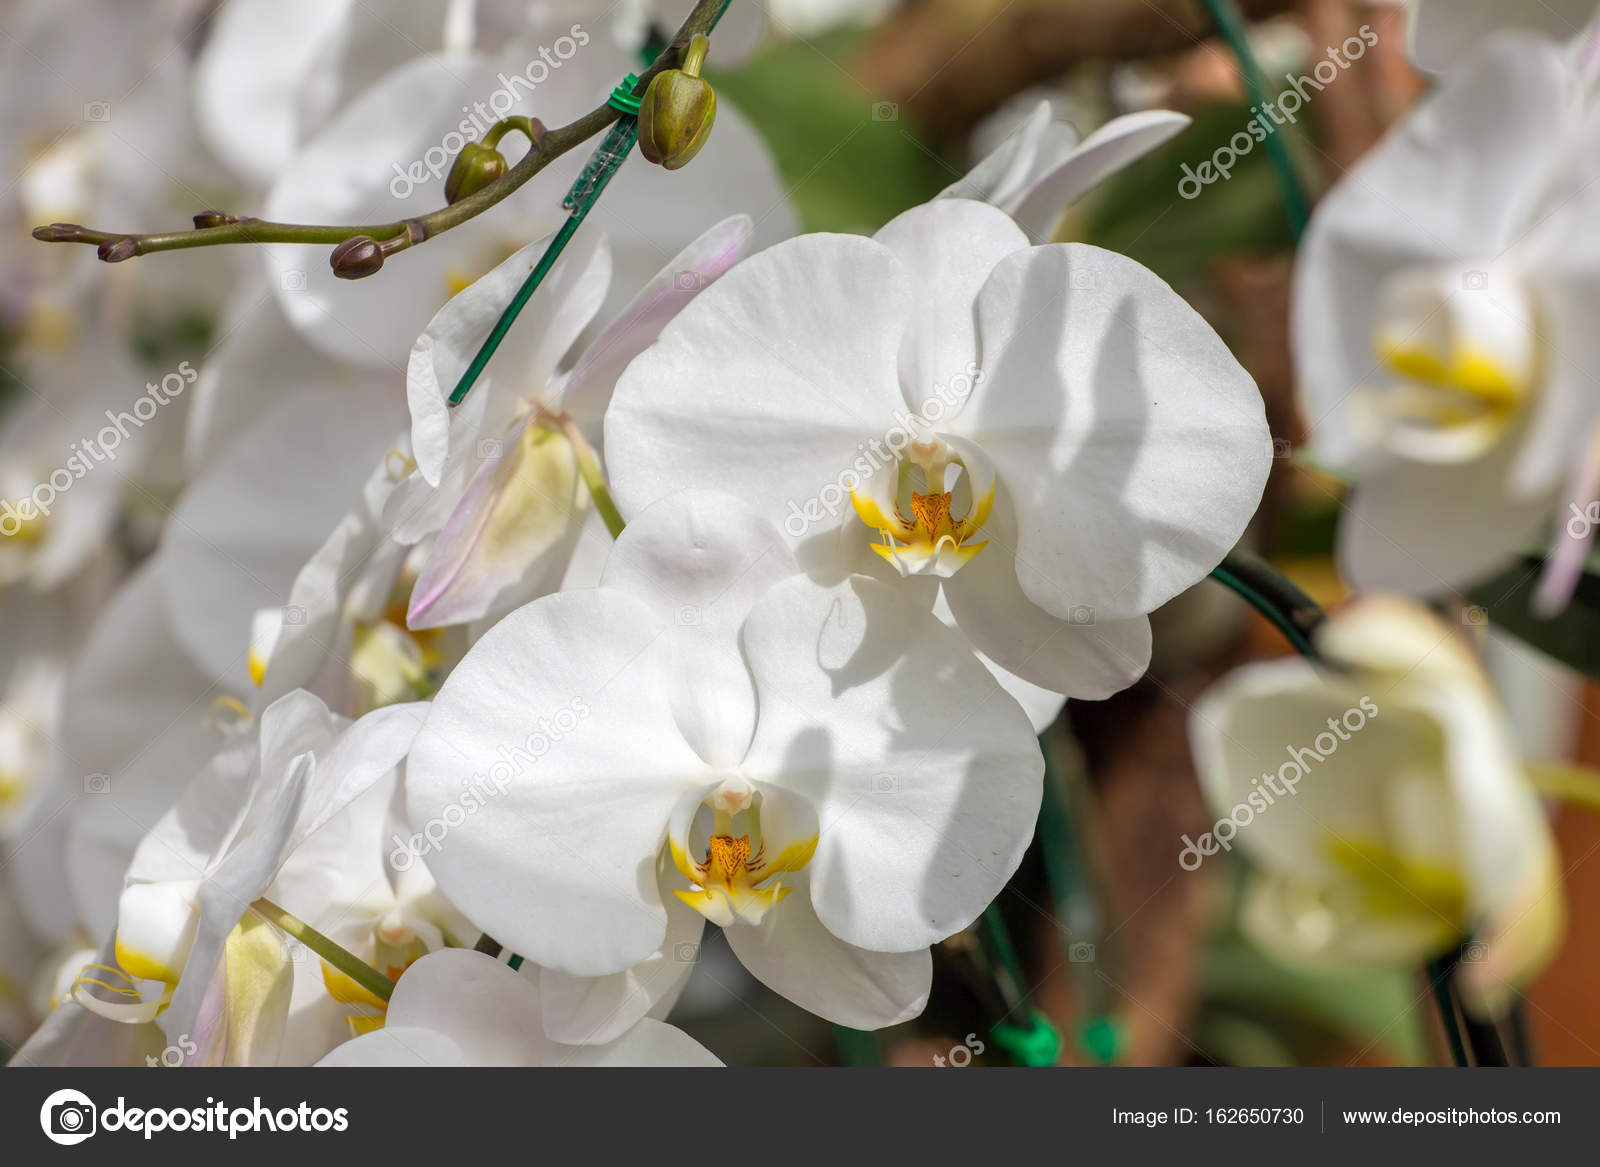 Beautiful White Orchid Flowers Stock Photo Mazzzur 162650730